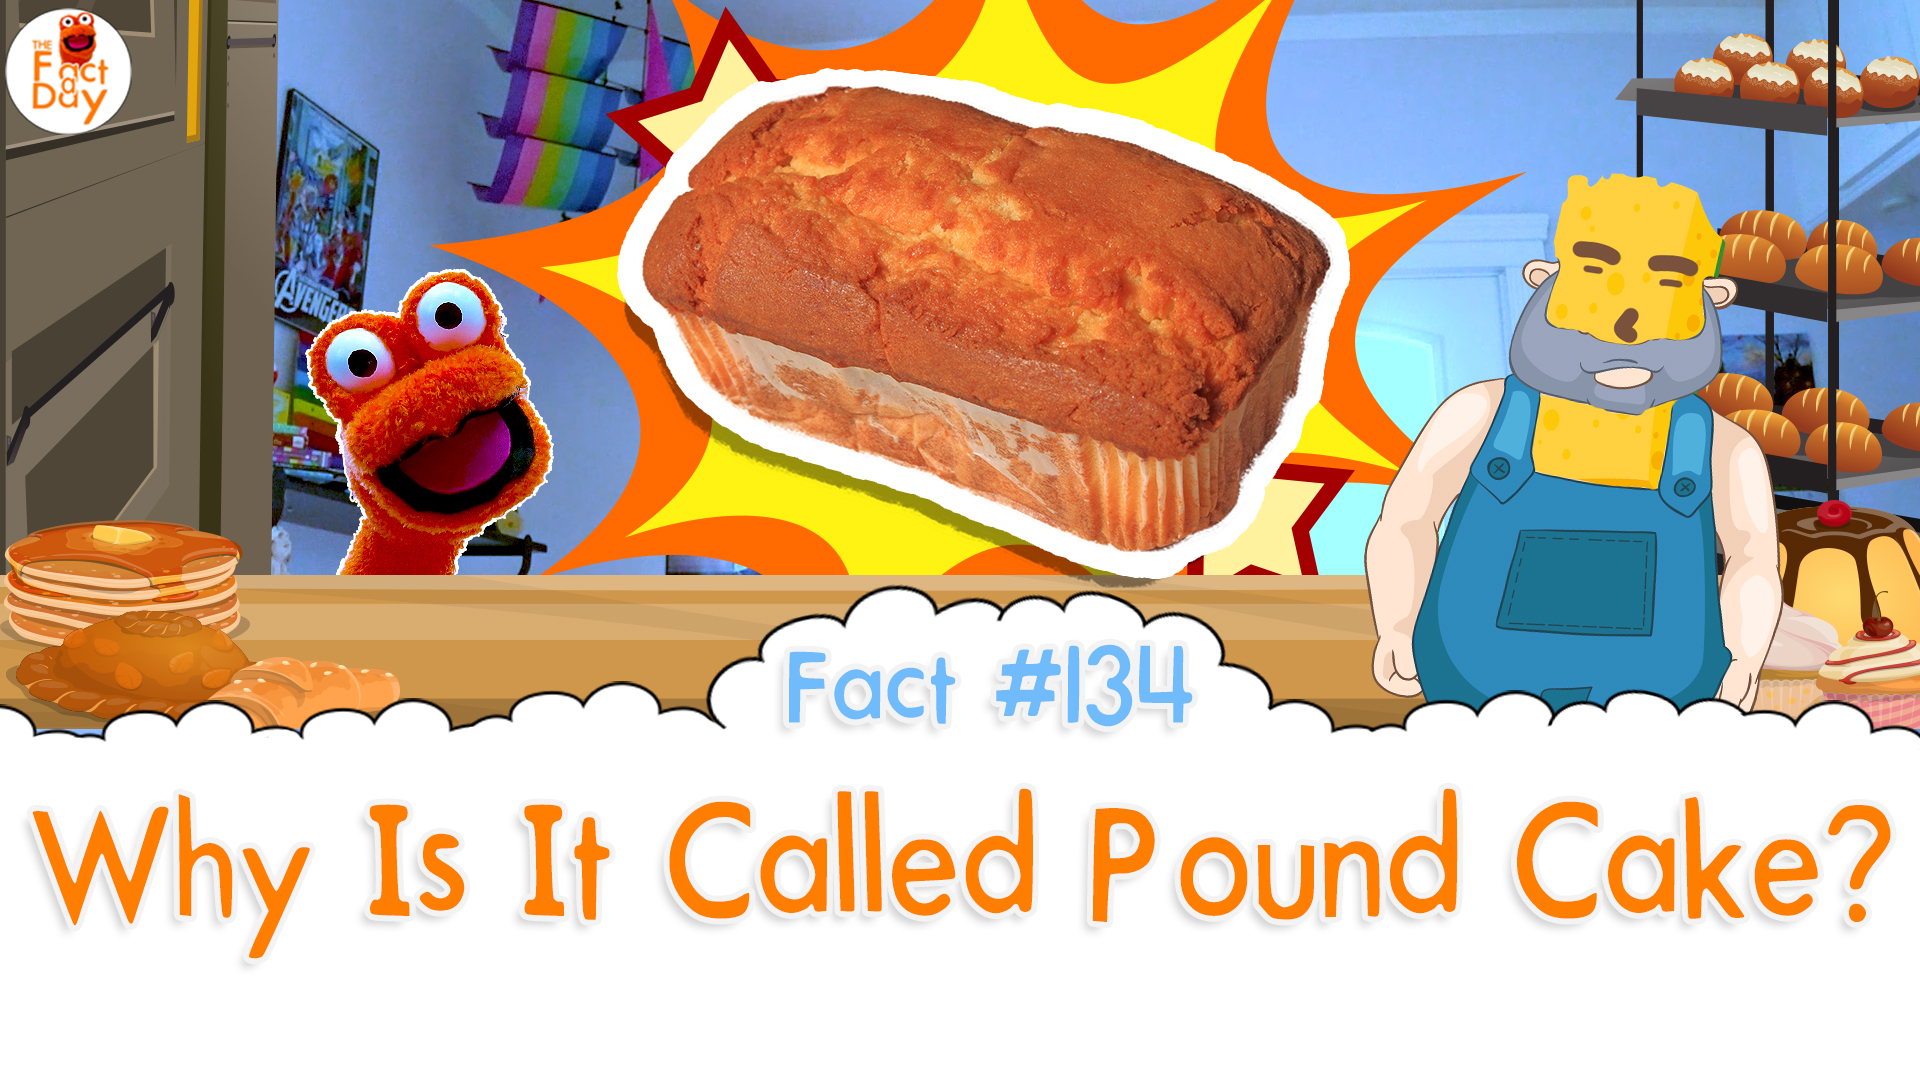 The Fact a Day - Why is it called pound cake